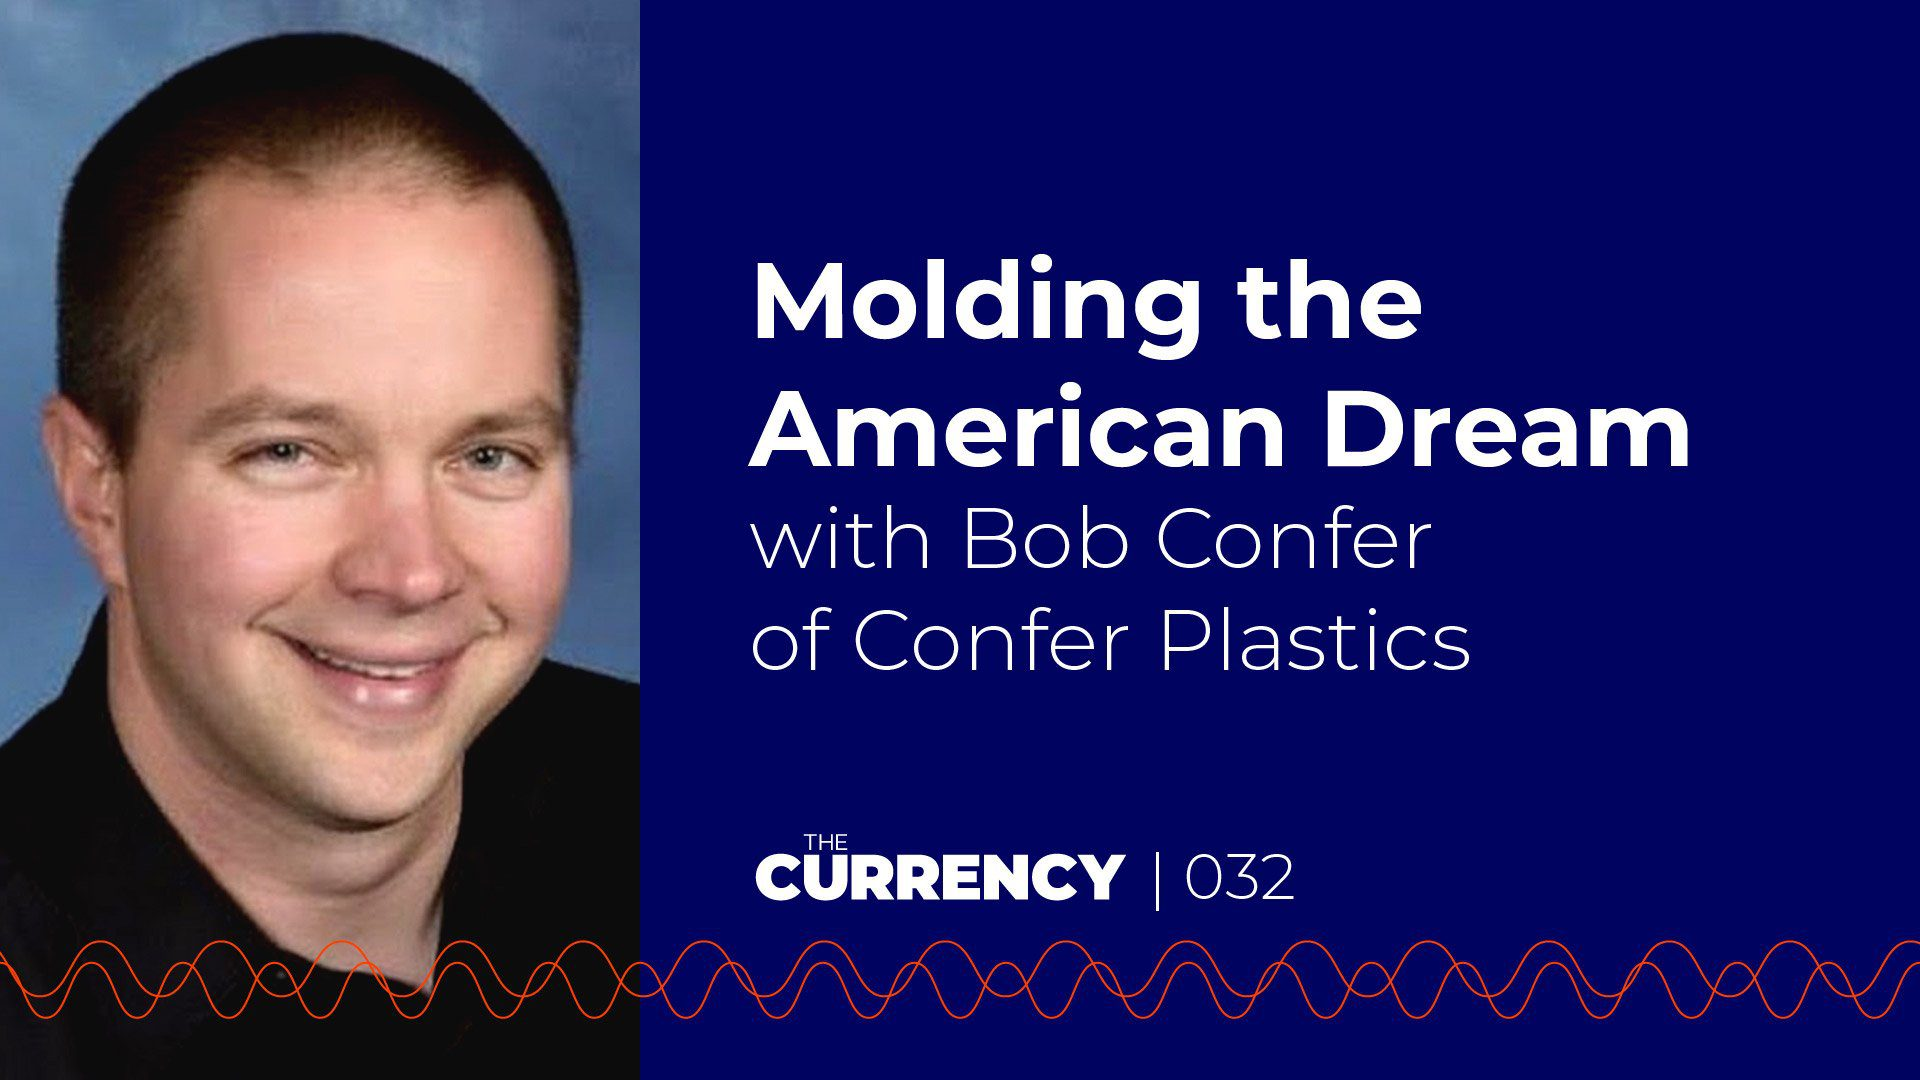 Bob Confer on The Currency podcast